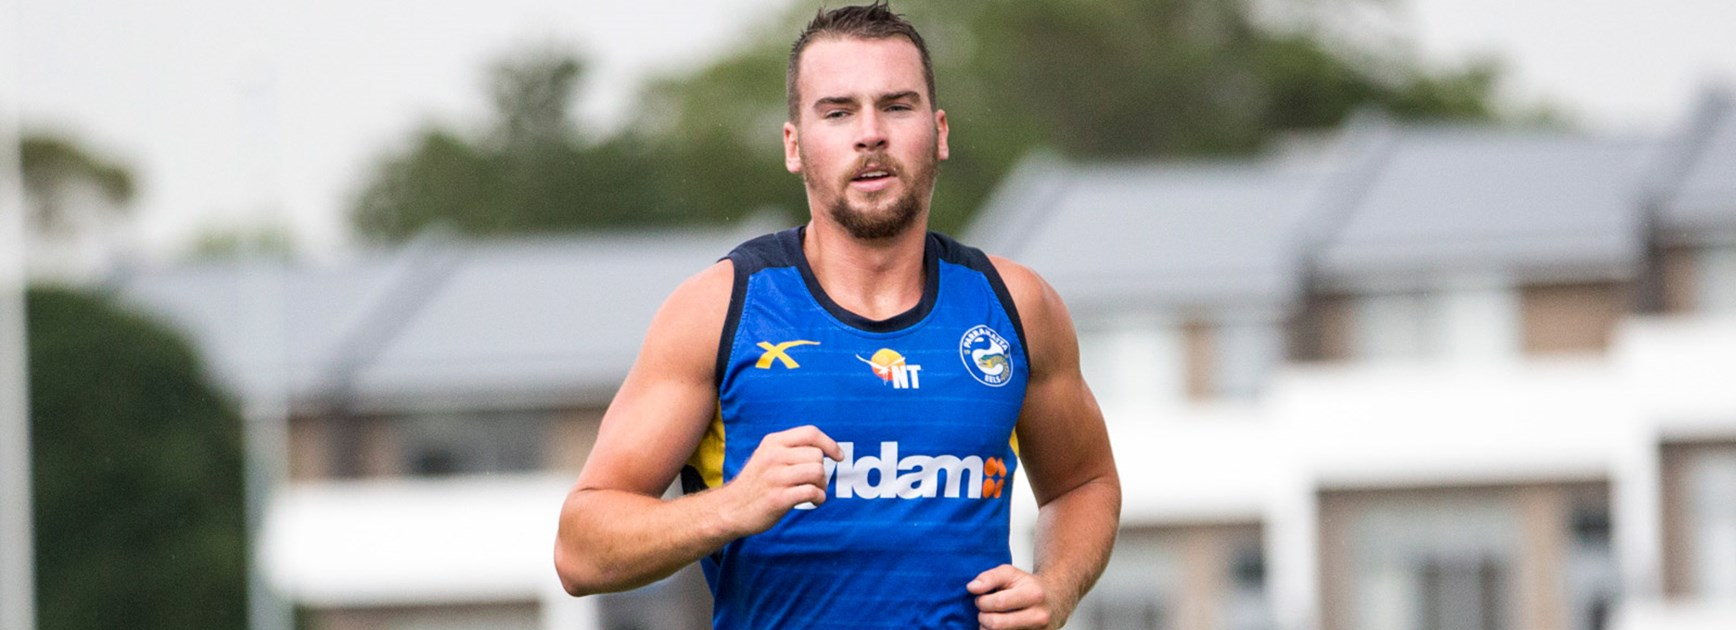 Eels recruit Clint Gutherson is looking to move to fullback in the long-term.